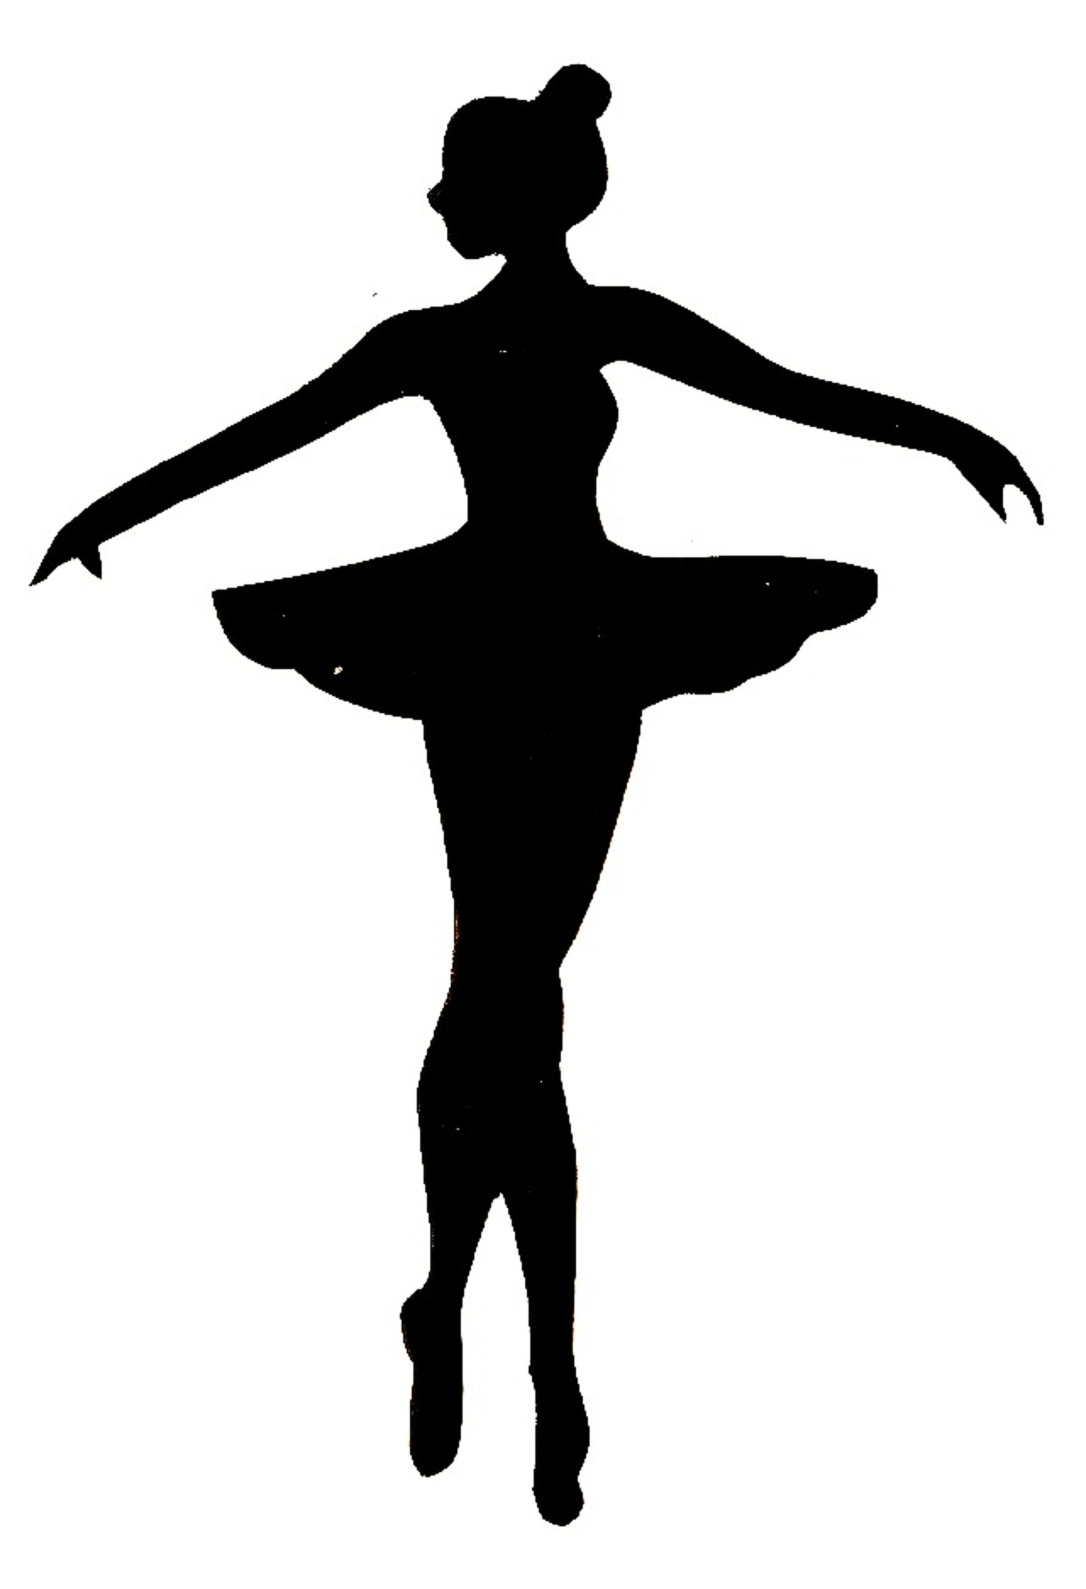 10-ballerina-png-free-cliparts-that-you-can-download-to-you-computer-3qUPcu-clipart-2